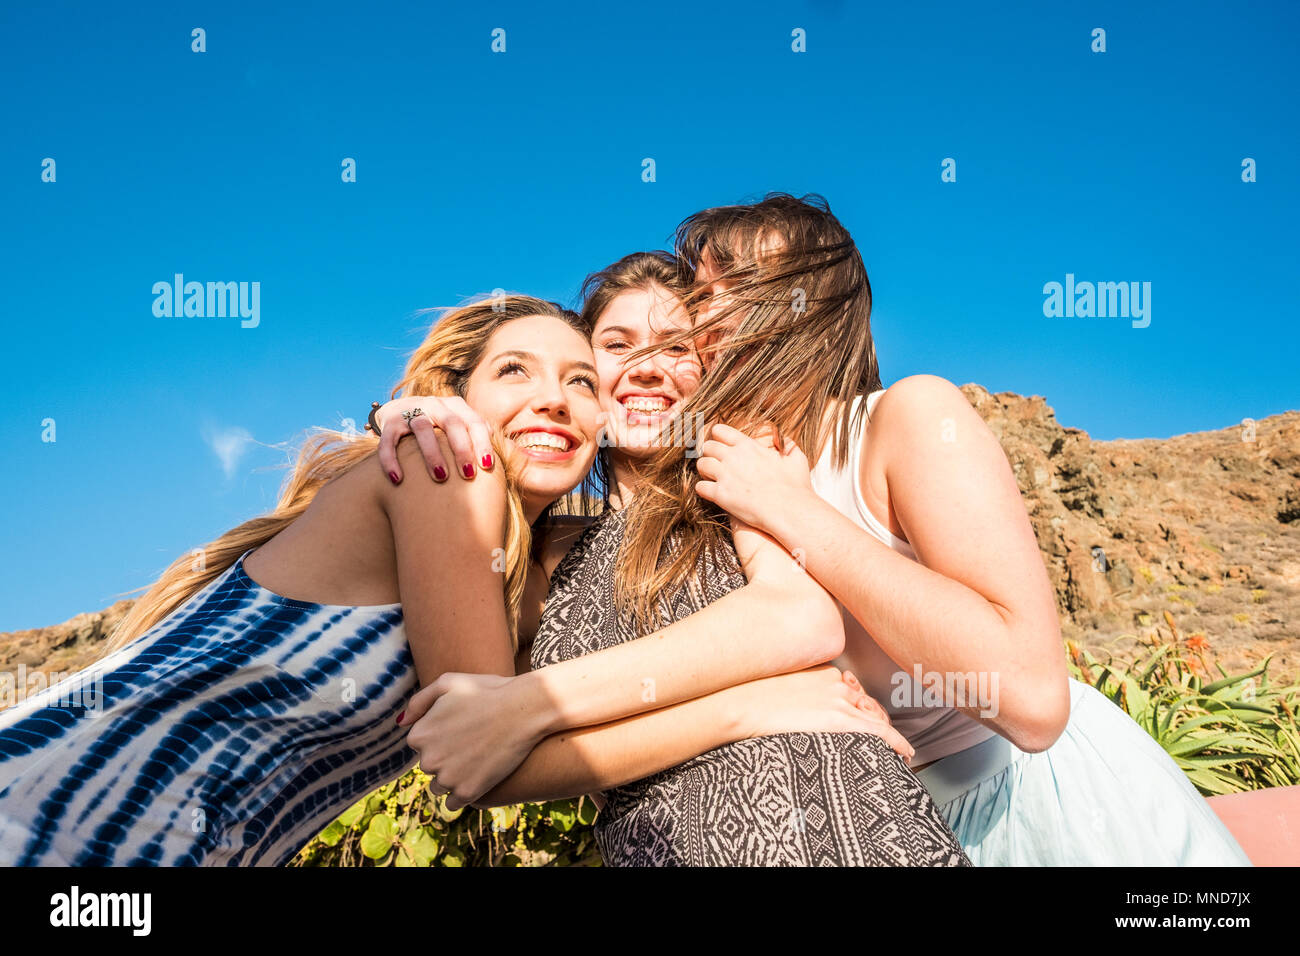 Three girls kissing at the same time